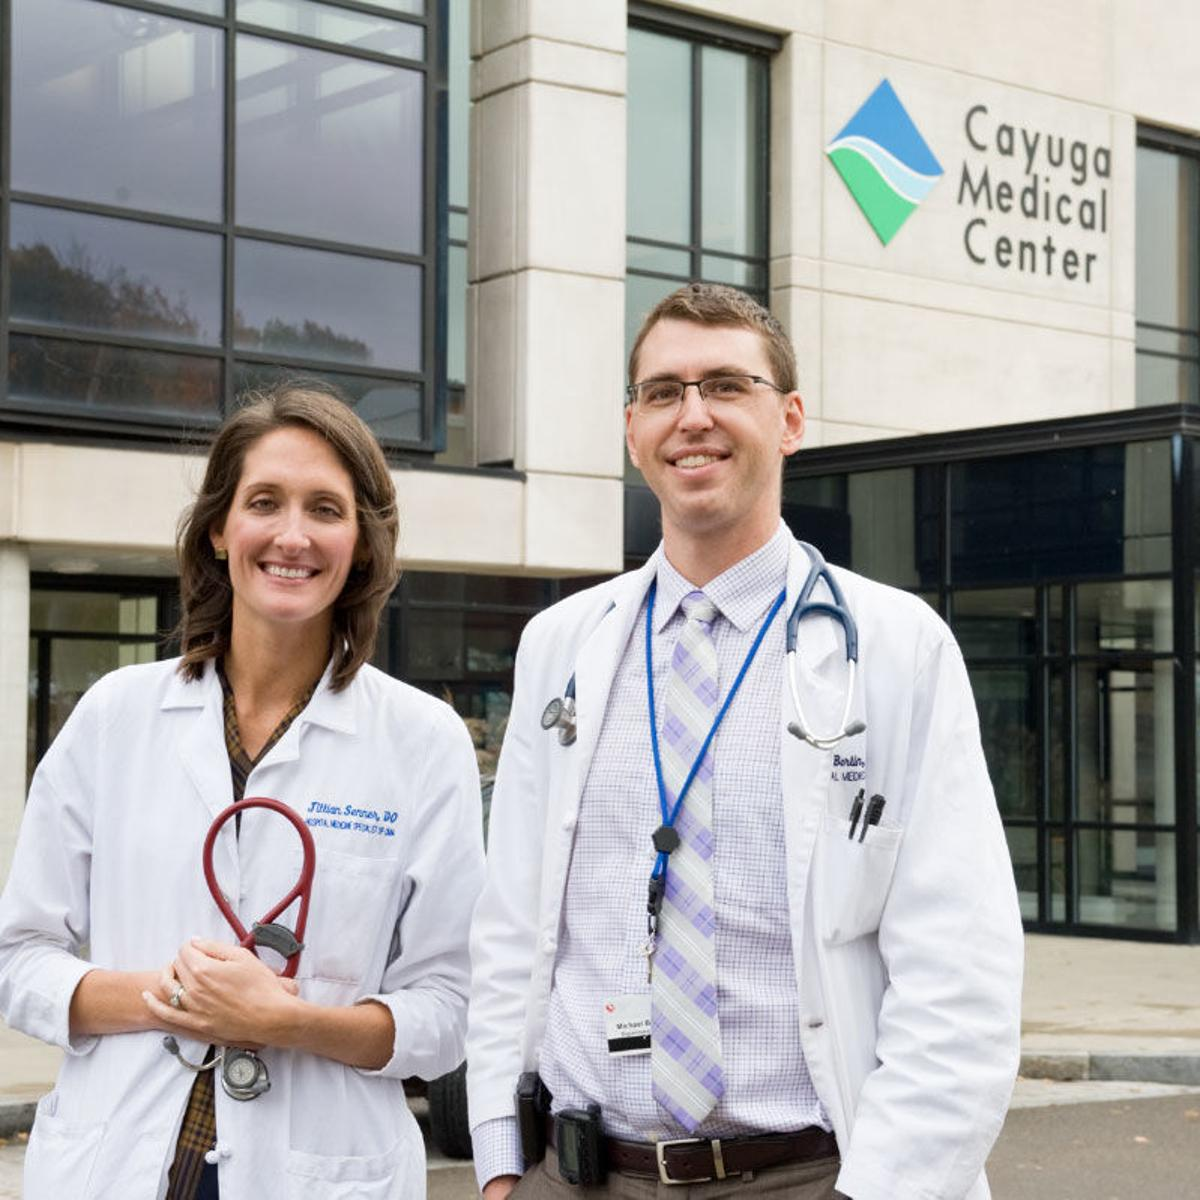 New Residency Program Coming to Cayuga Medical Center